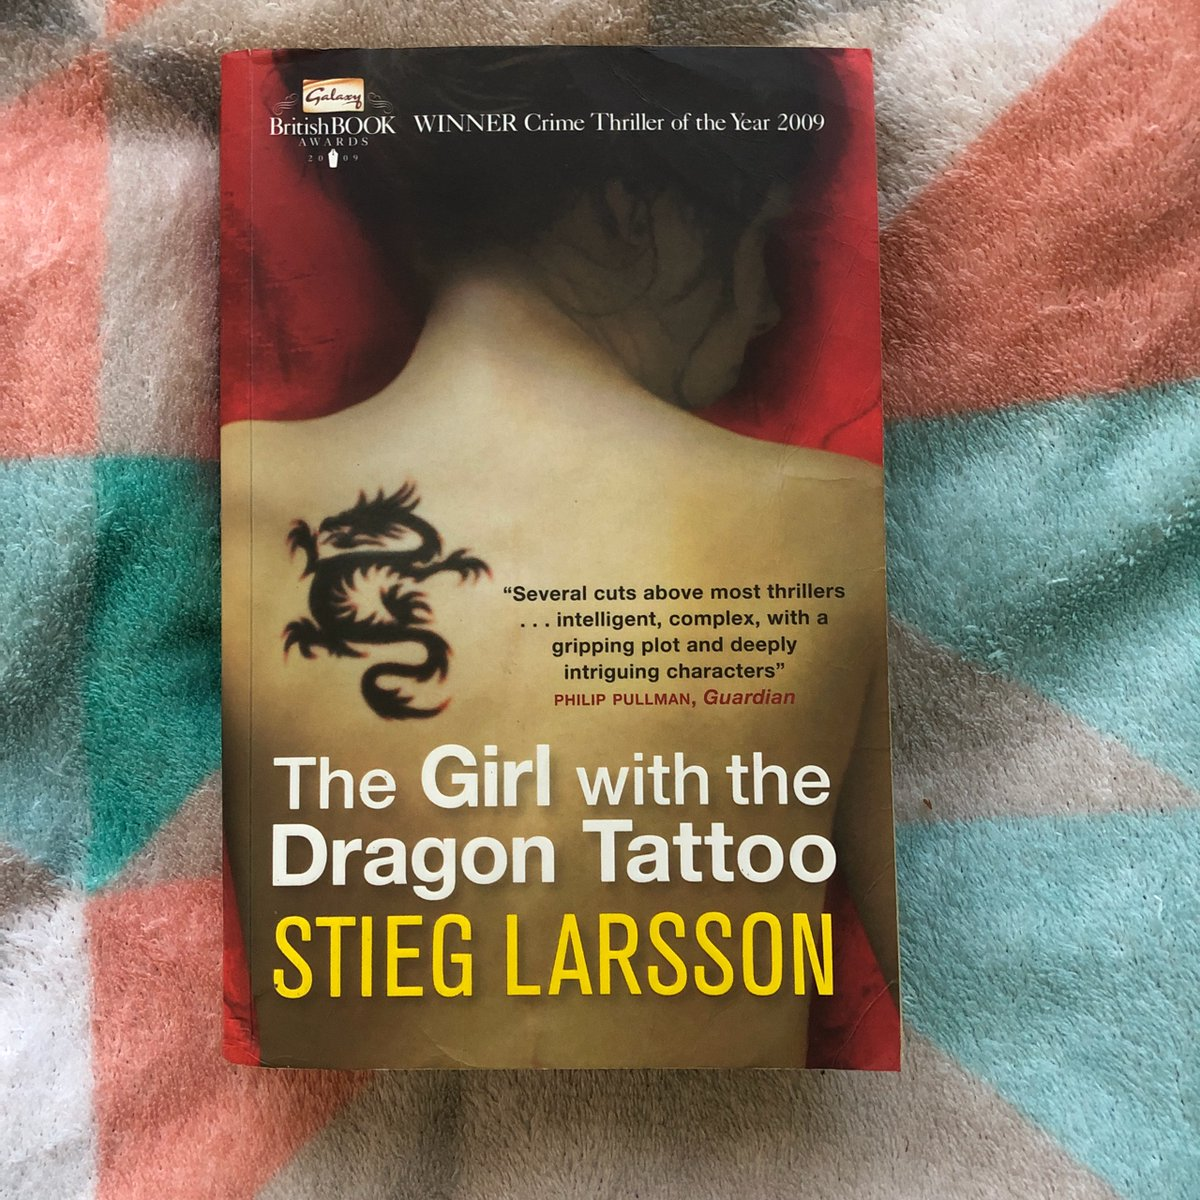 """""""Never engage in a fight you're sure to lose.""""  #TheGirlWithTheDragonTattoo by #StiegLarsson : 💫💫💫💫  The Girl with the Dragon Tattoo deserves a lot of the hype it gets. Now go out and read it if you haven't already! That's all. https://t.co/Uslbn6MElg"""